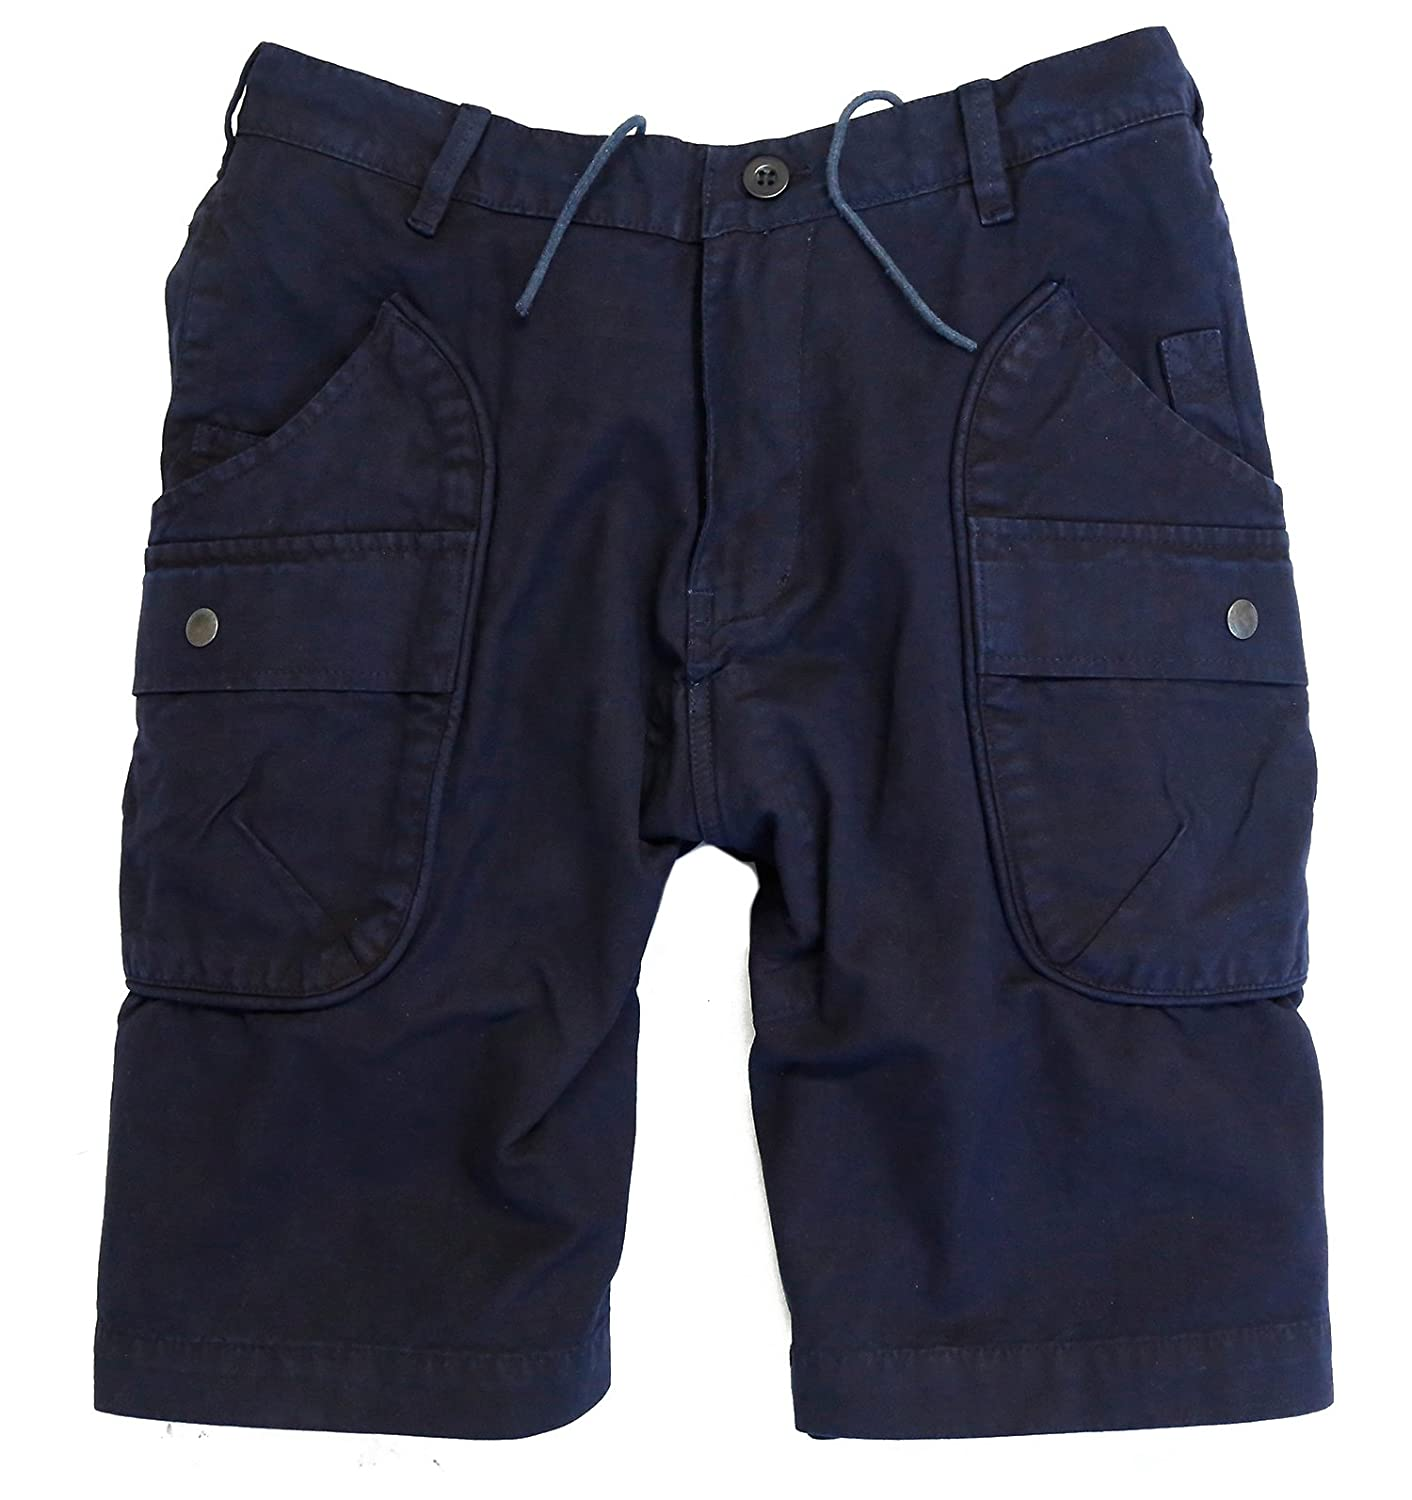 Kakadu Traders Logan Outdoor Cargo Shorts in schwarz, braun und blau